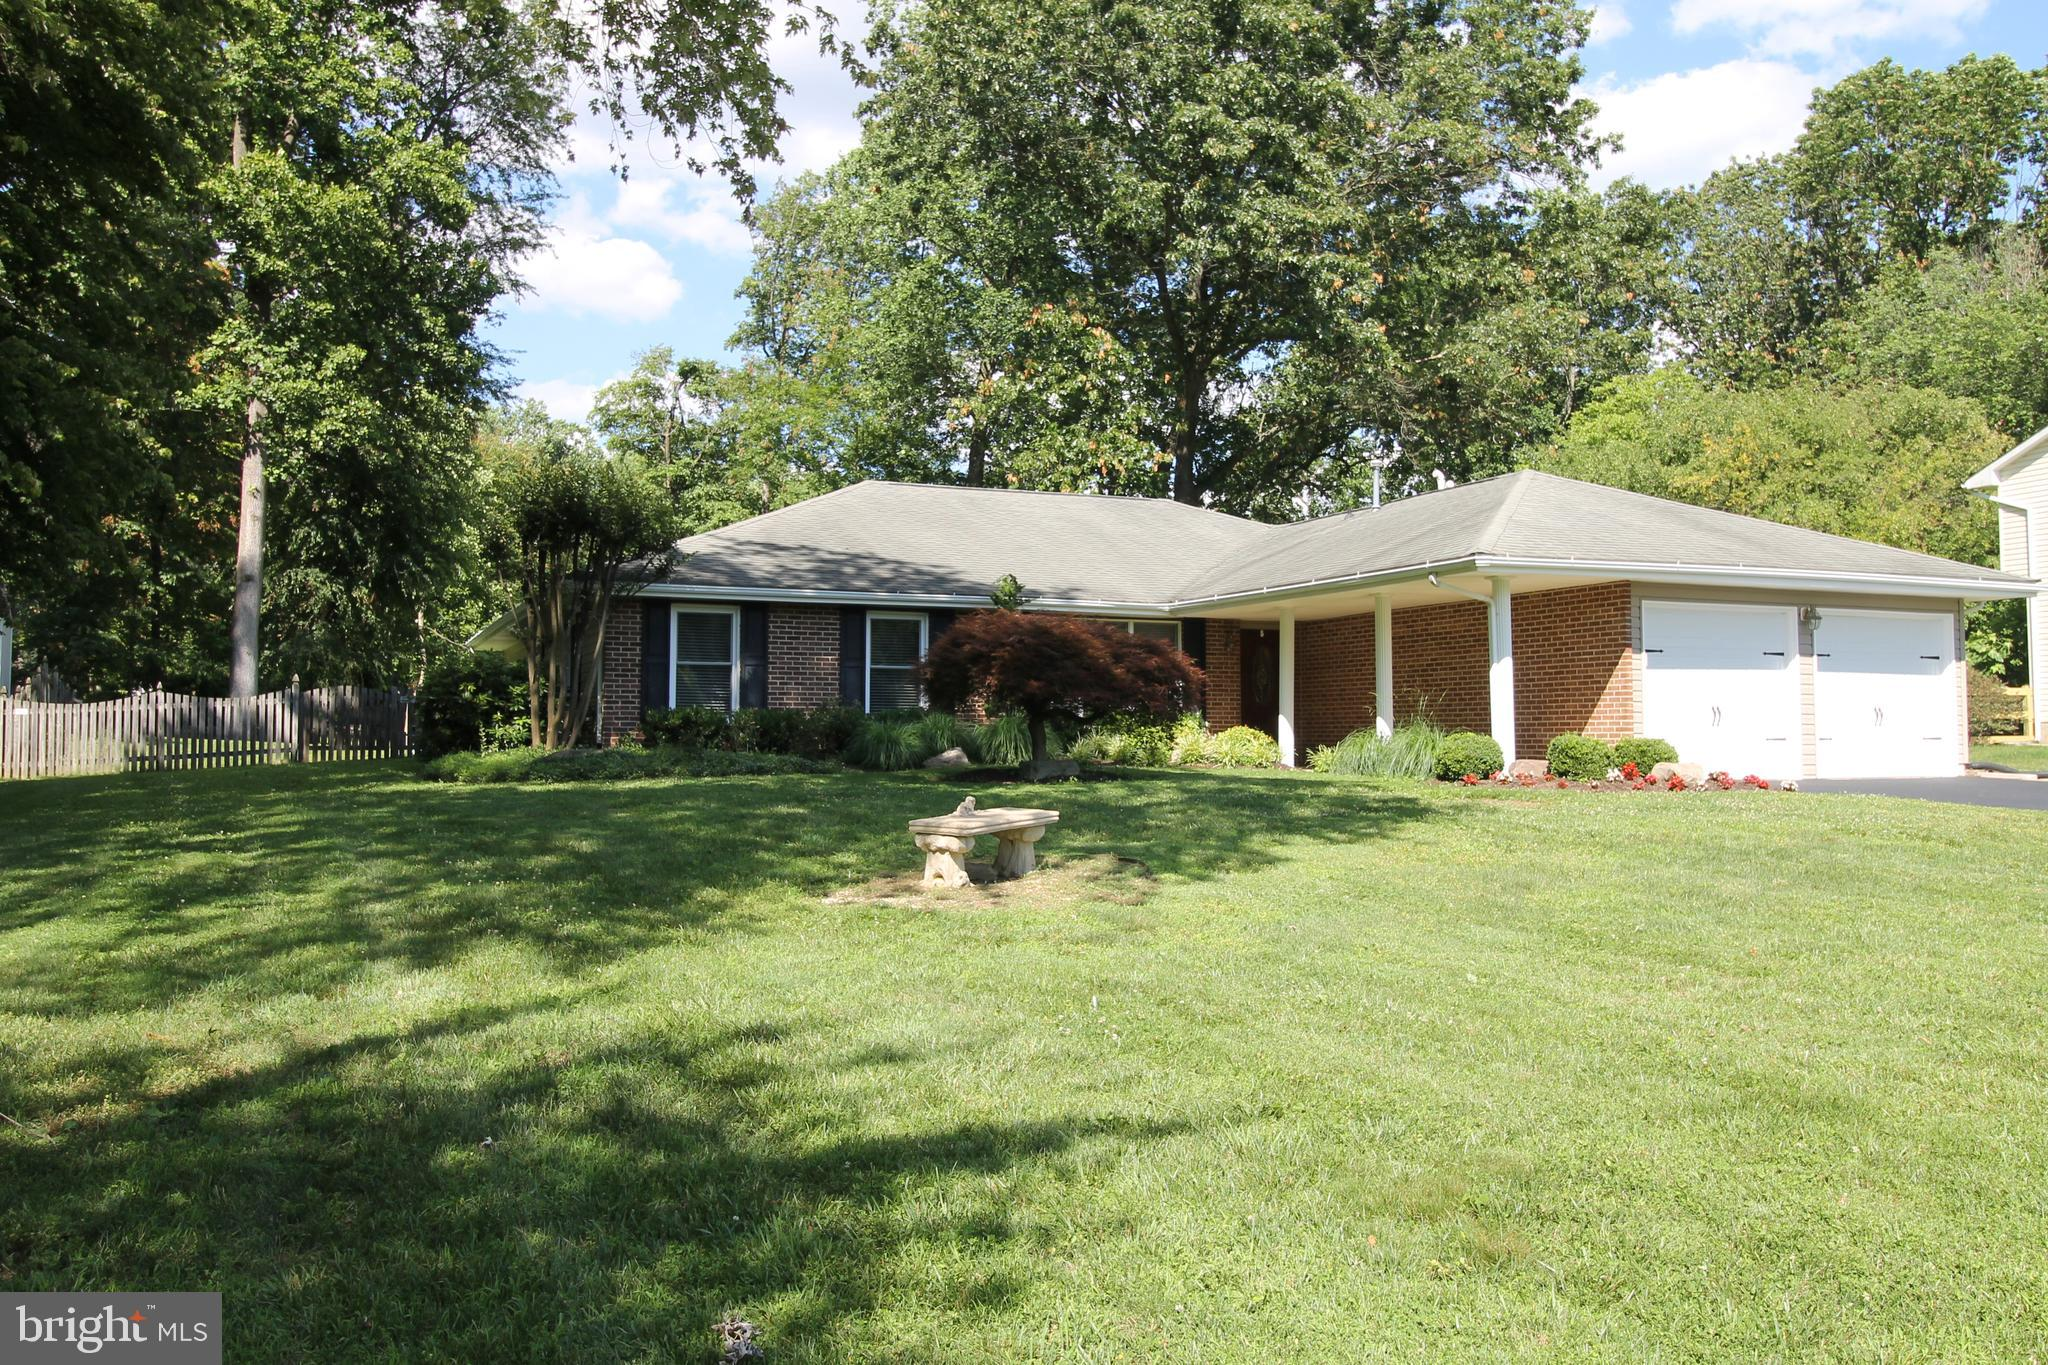 OPEN HOUSE Sunday 6/27 from 1-3pm. Beautifully maintained and expanded Rancher with in-ground pool,